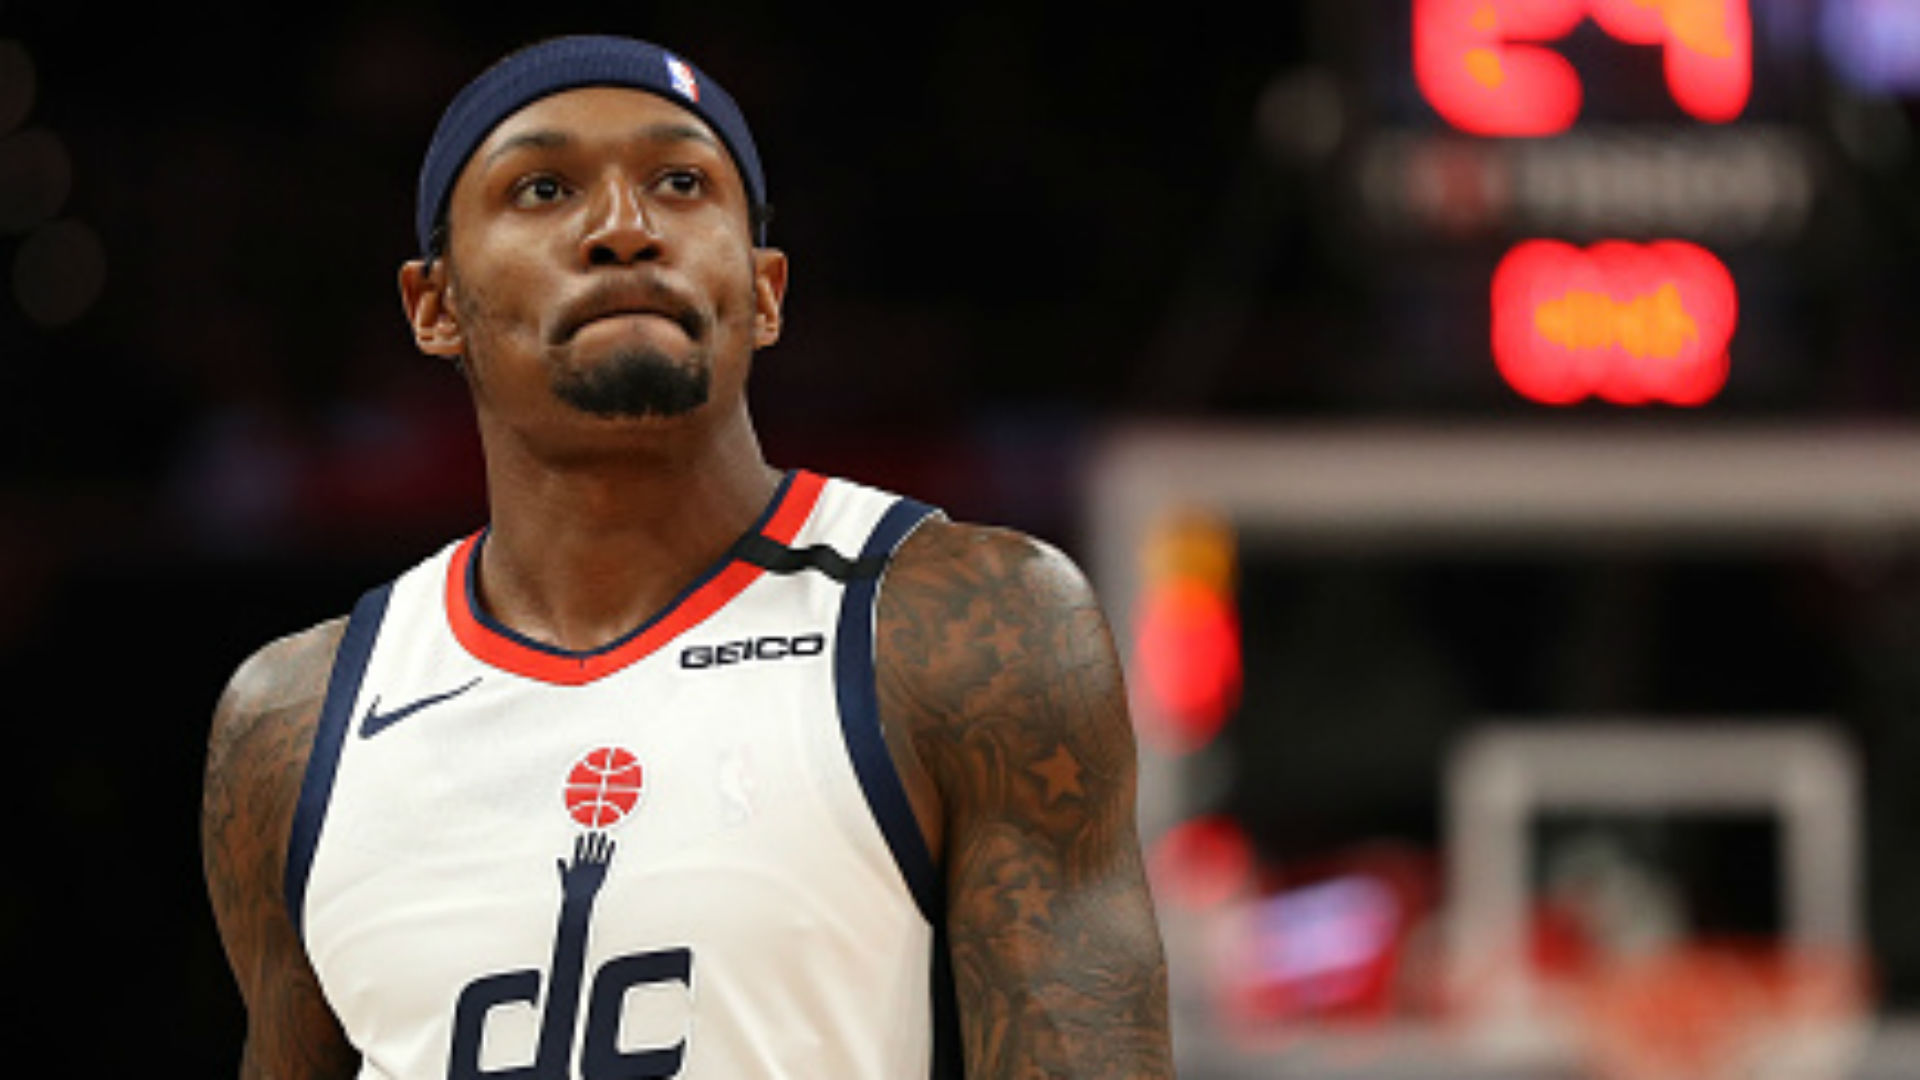 Bradley Beal looked miserable on Wizards bench, prompting flood of empathy from Twitter